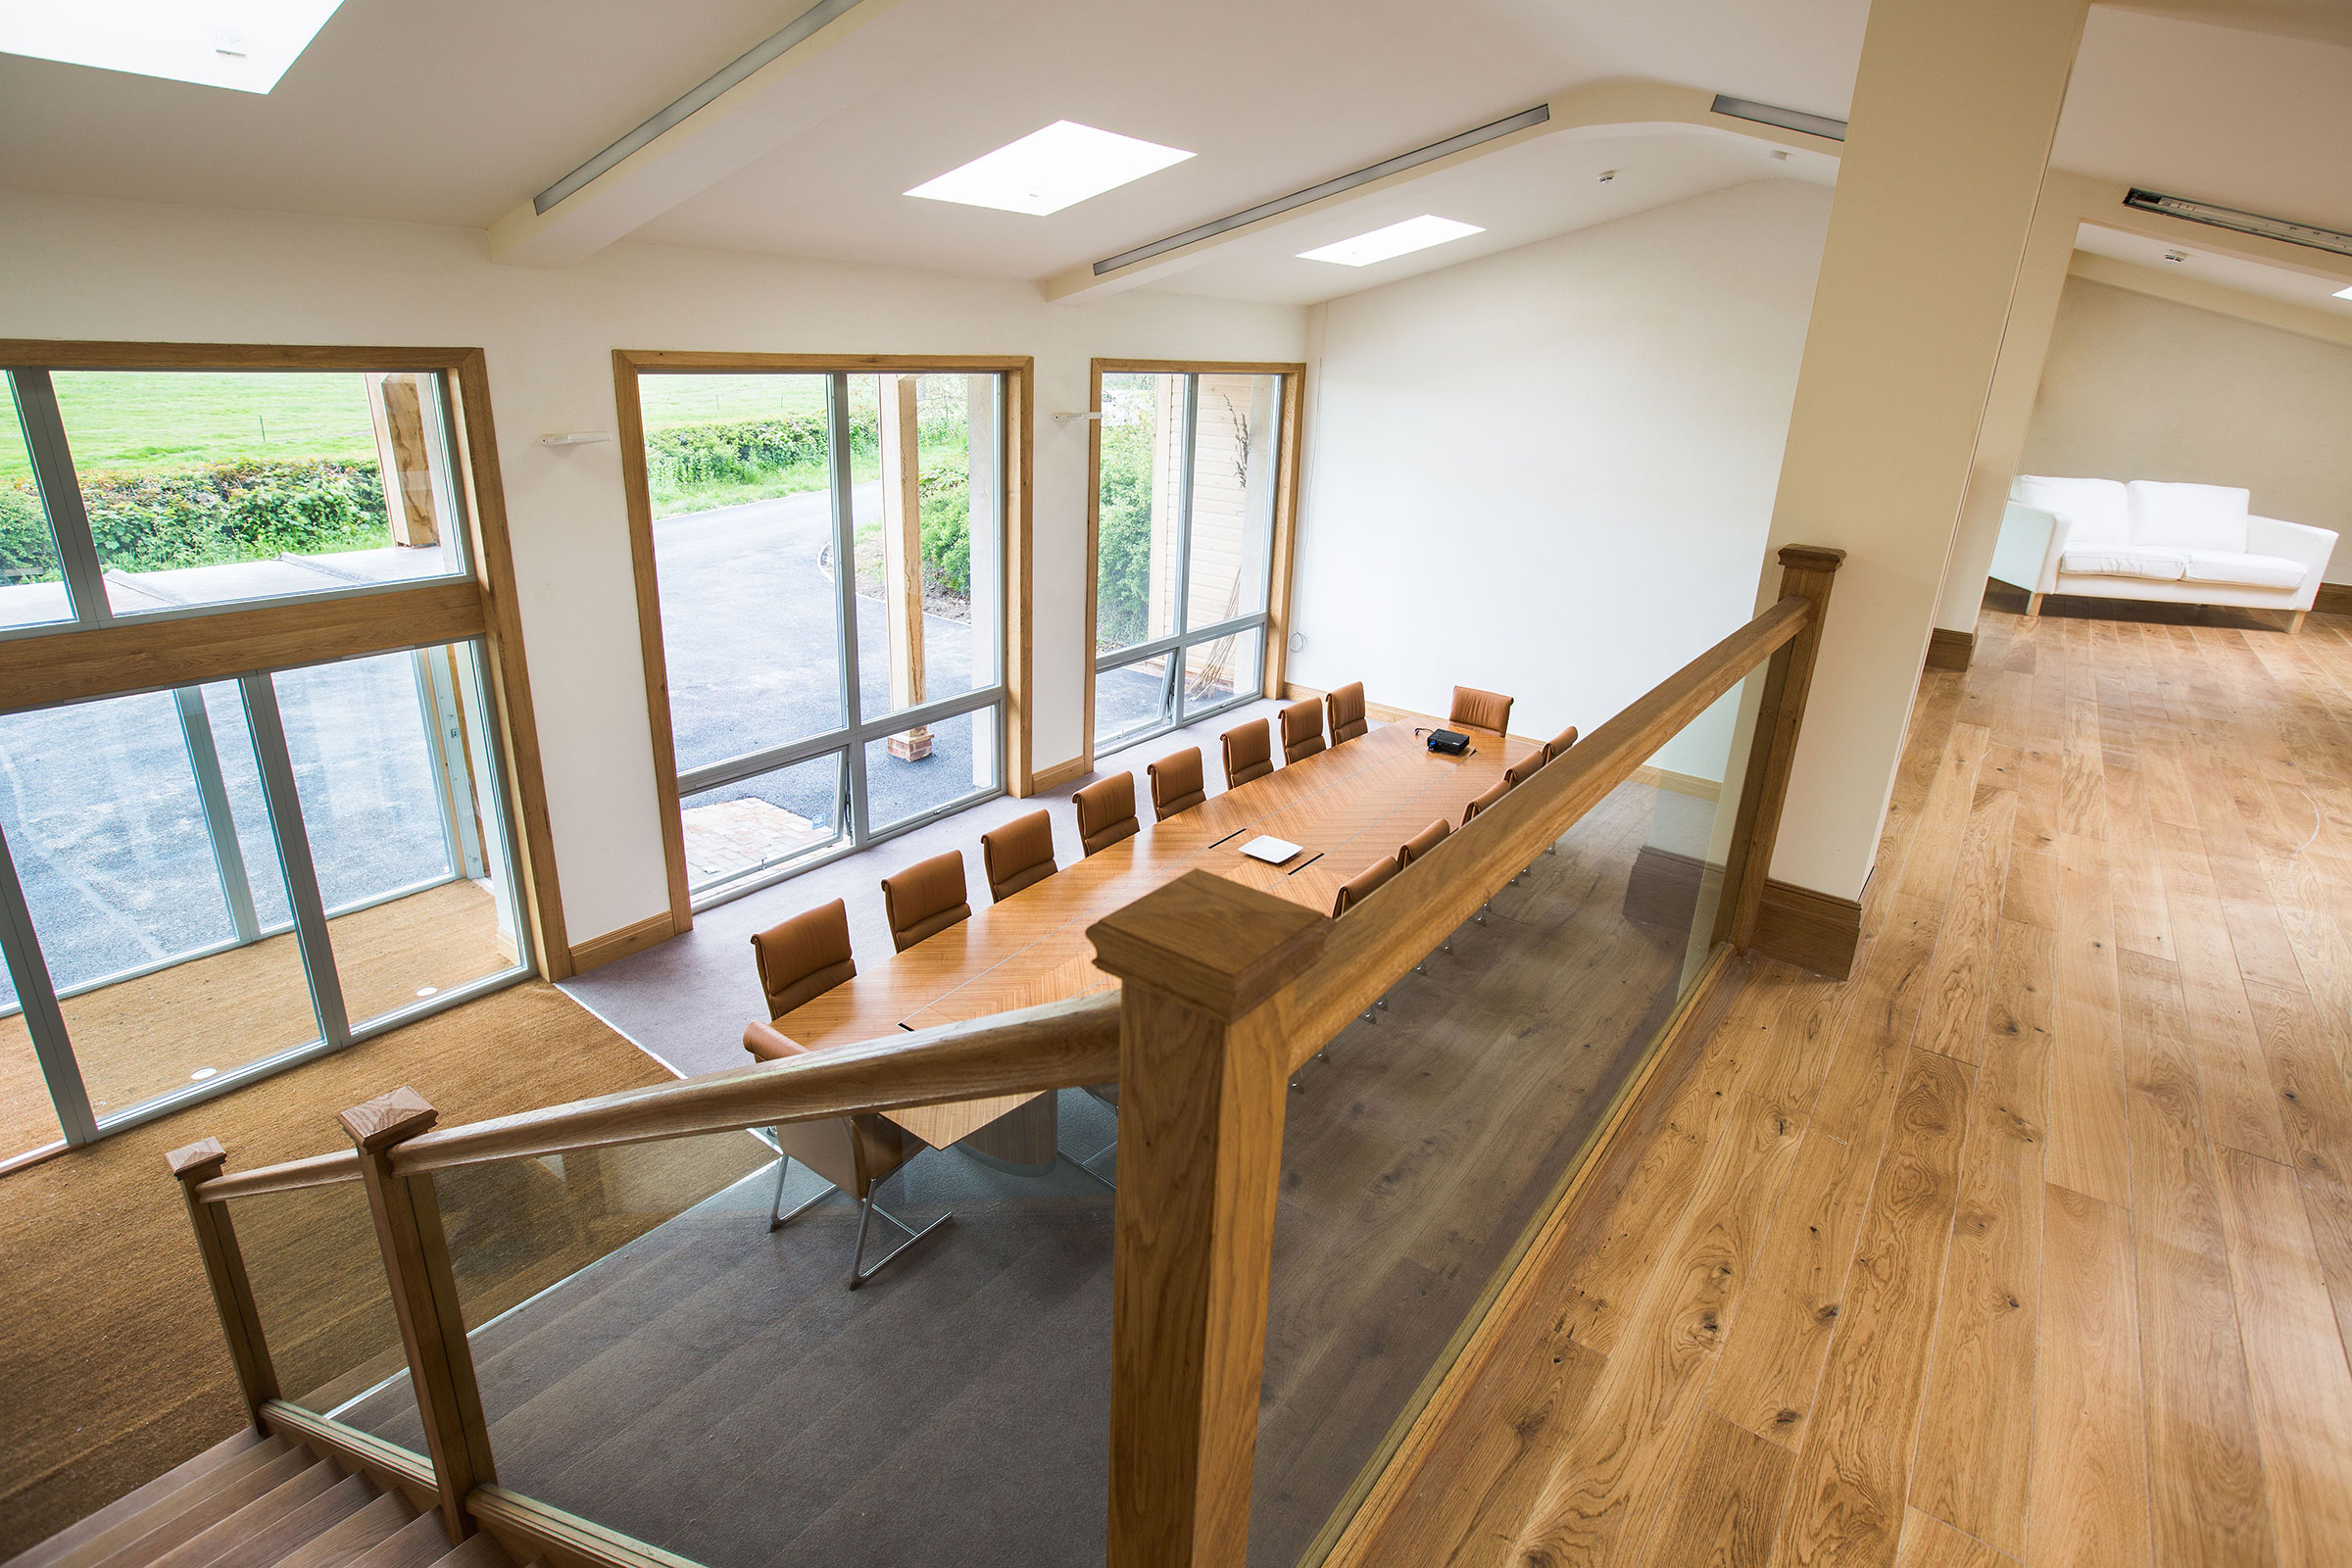 Hornington Manor - The sustainable new showroom for Harrison Spinks